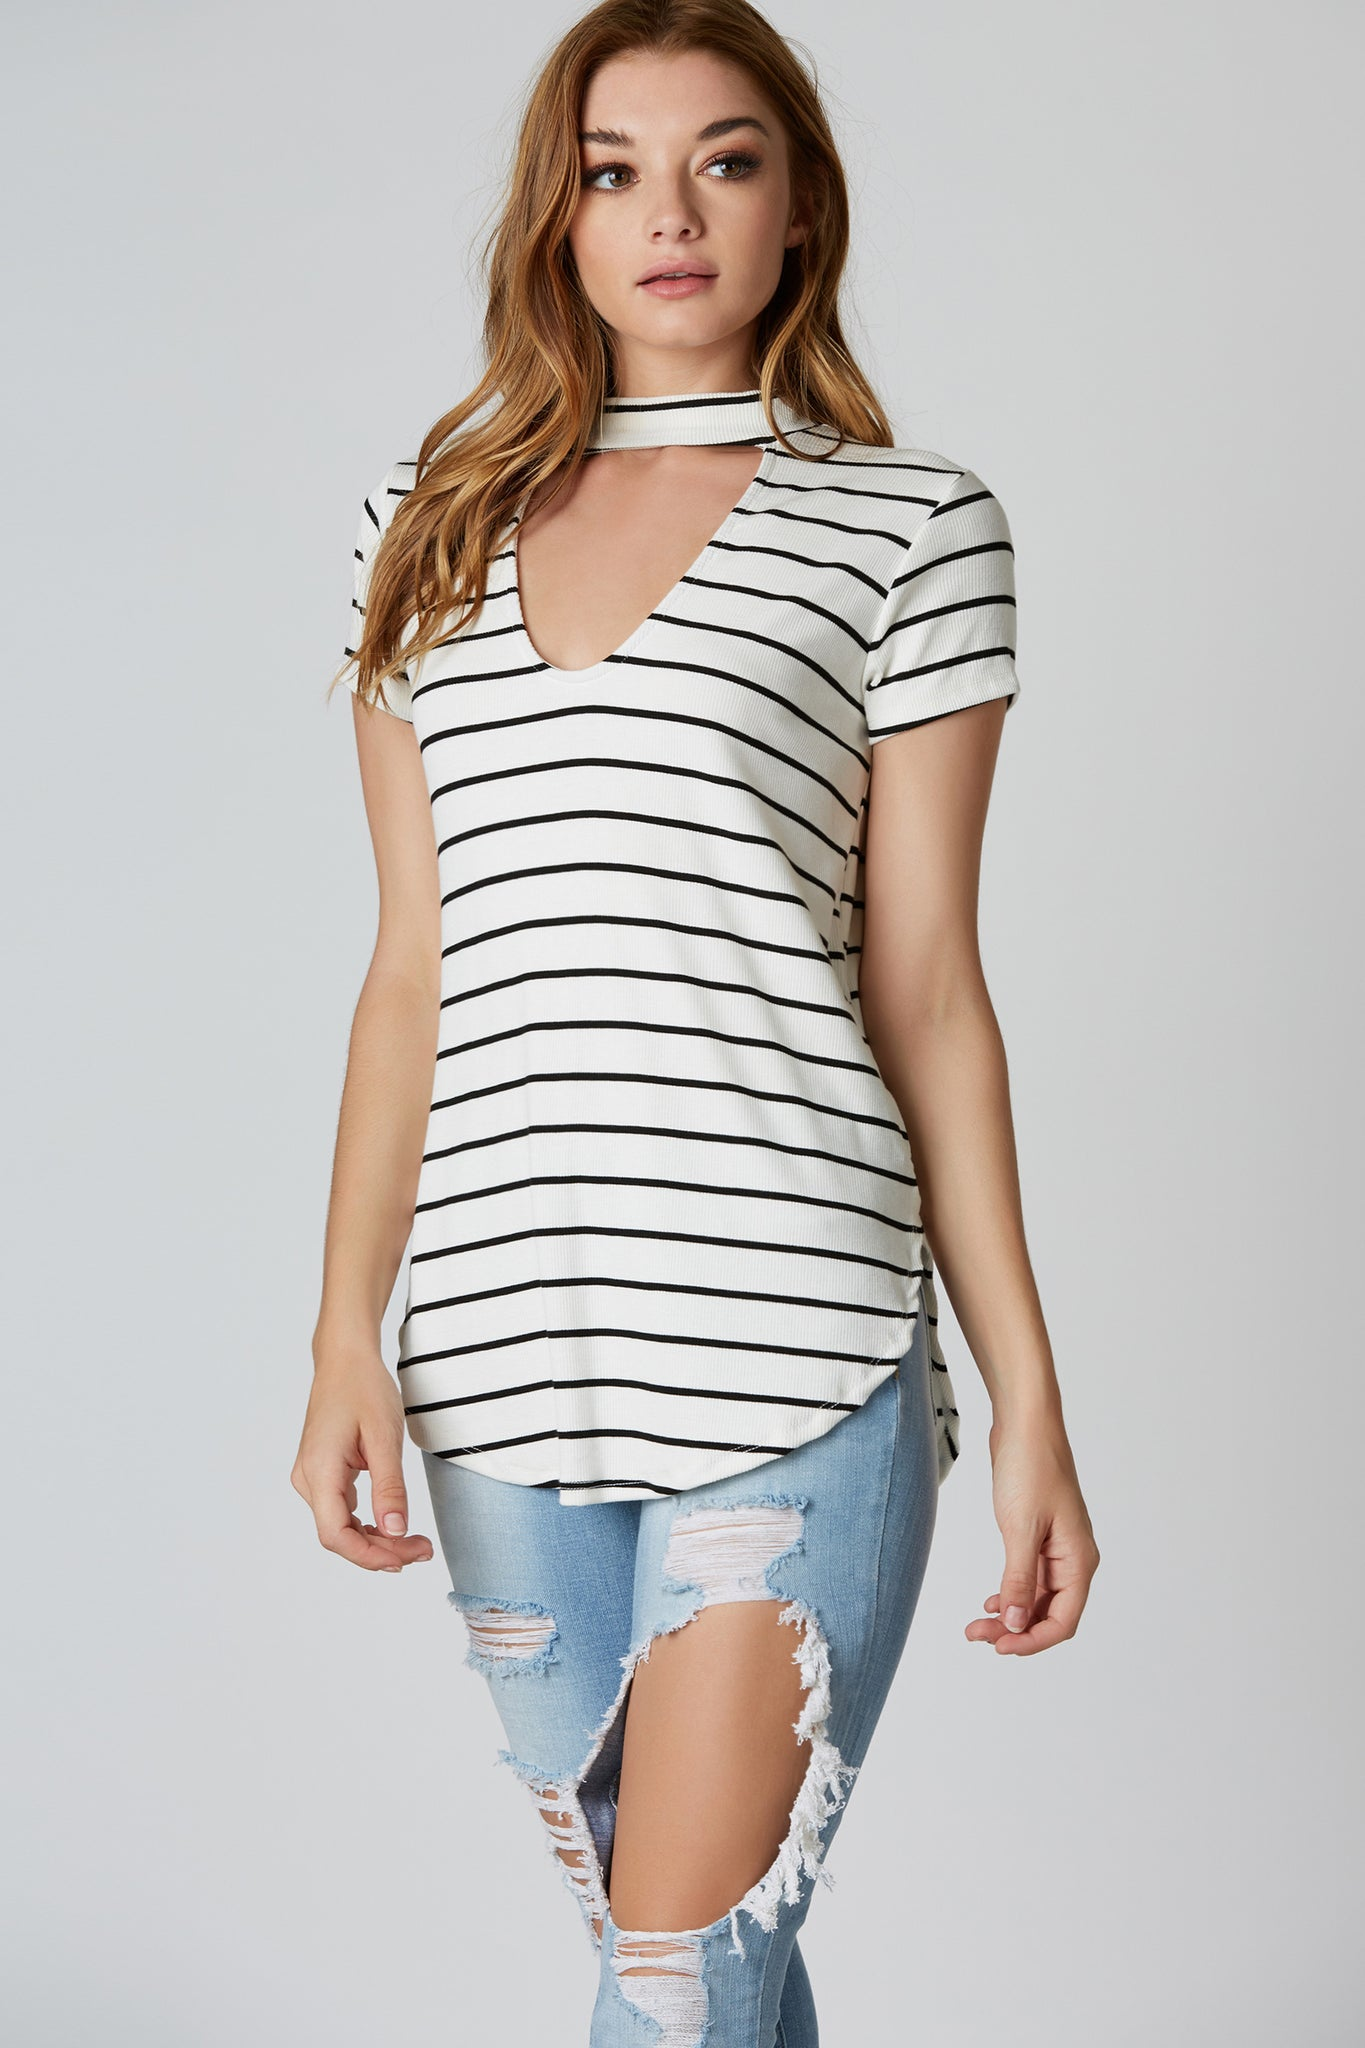 Casual ribbed short sleeve top with stripe patterns throughout. Cut out choker neckline with oversized fit and rounded hem finish.